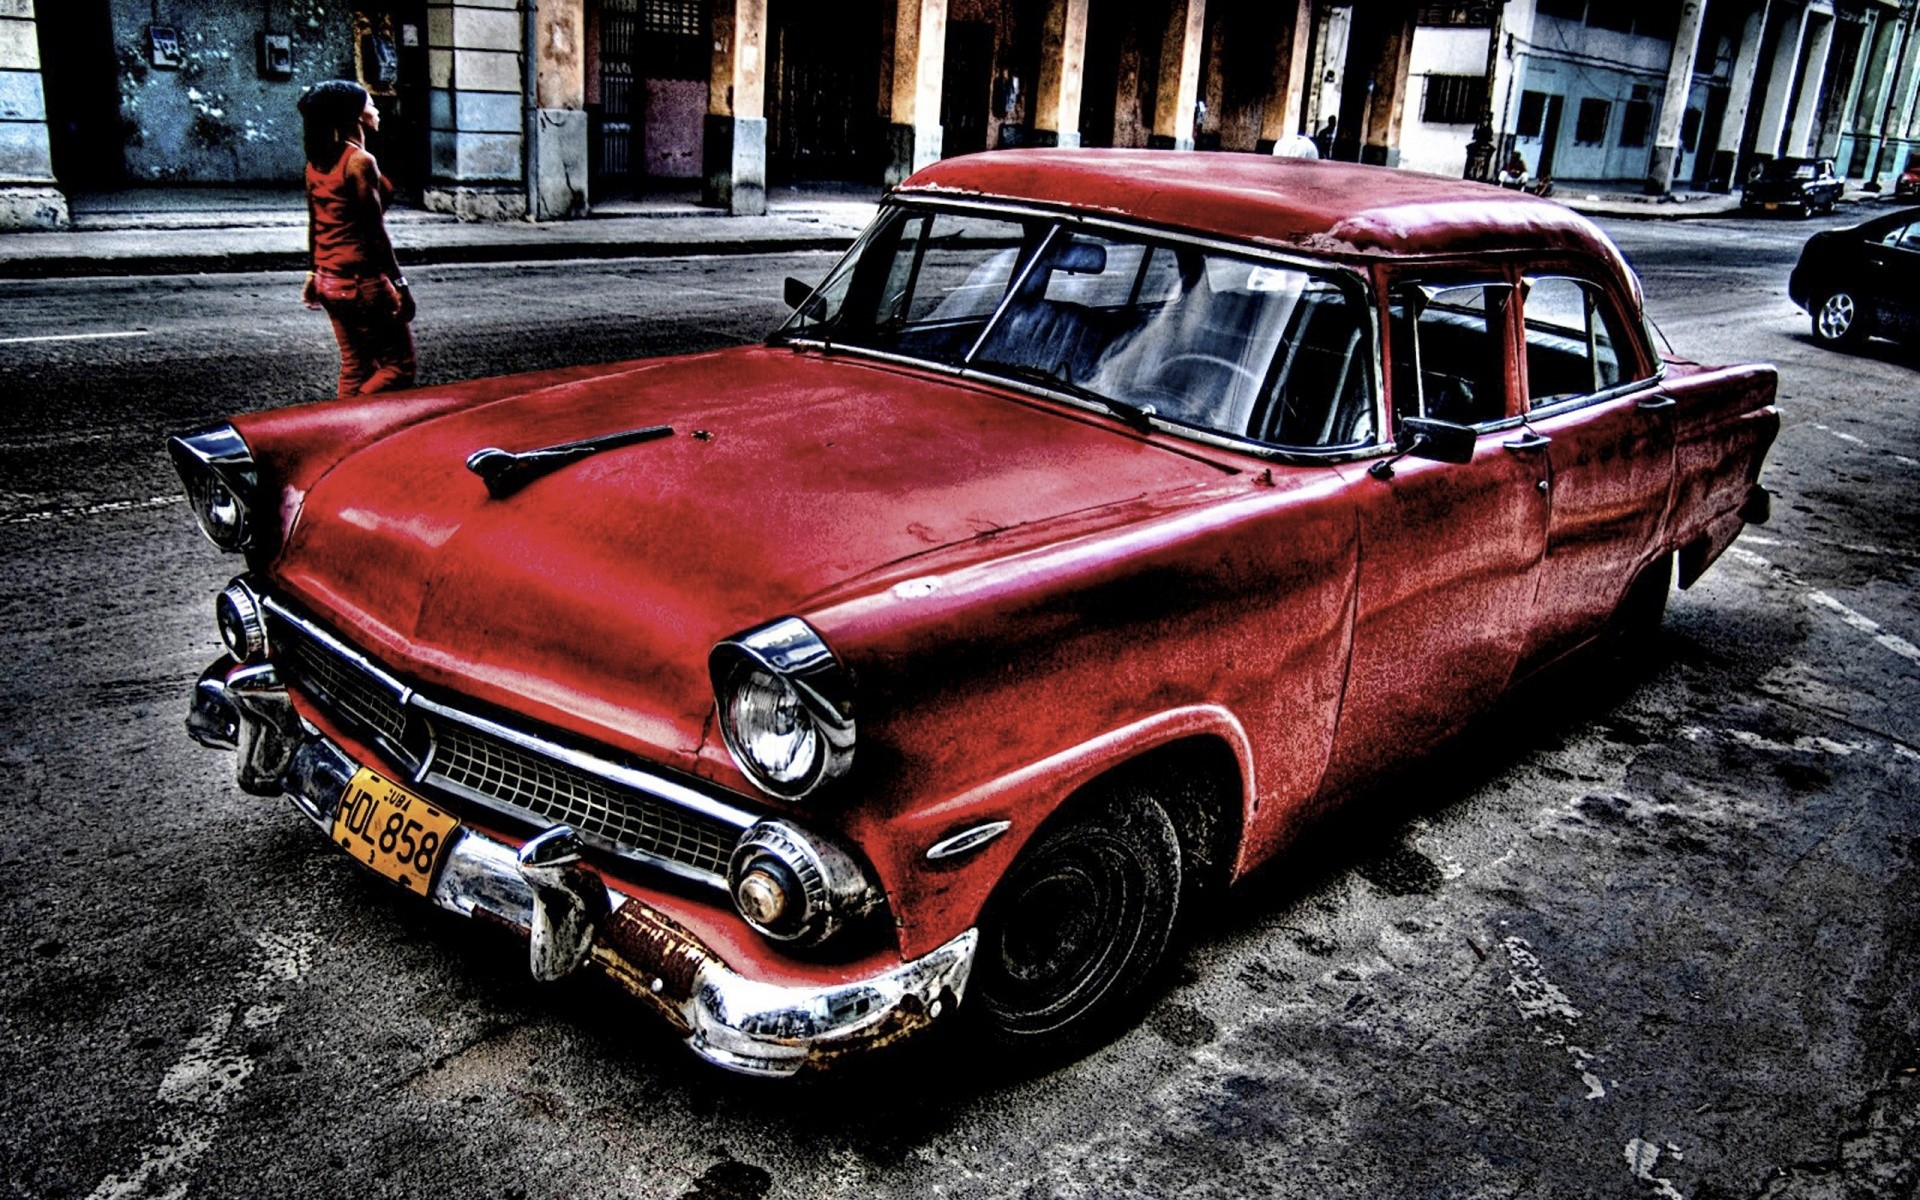 Old Classic Cars Wallpaper Images - Cheap old classic cars